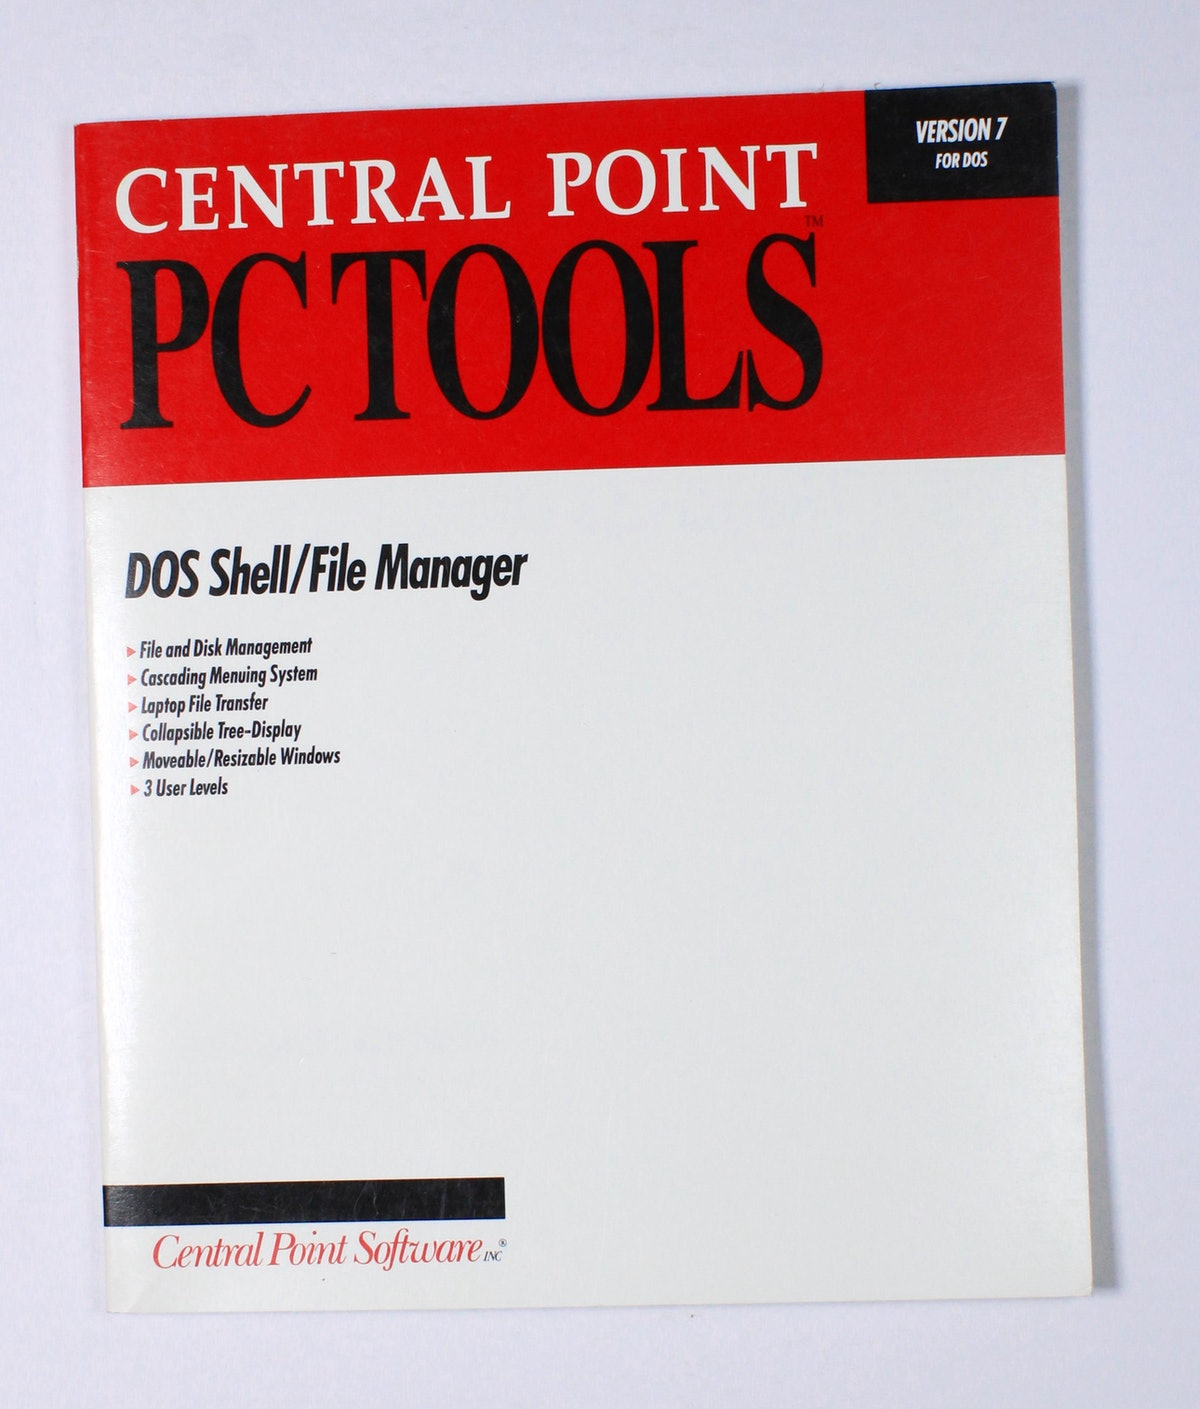 Central Point PC Tools: DOS Shell/ File Manager